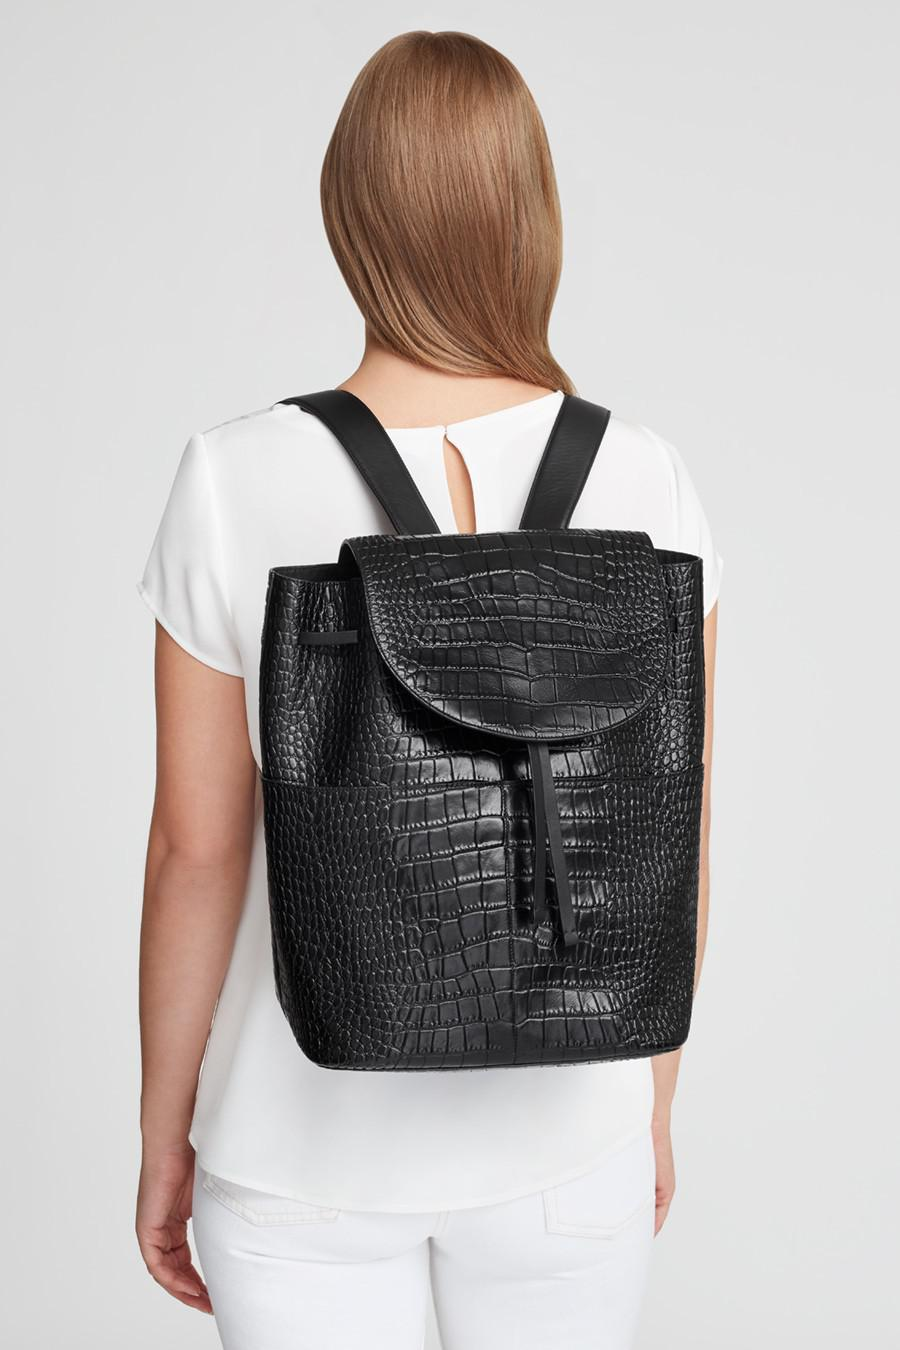 Women's Large Leather Backpack in Textured Black | Croc-Embossed by Cuyana 5